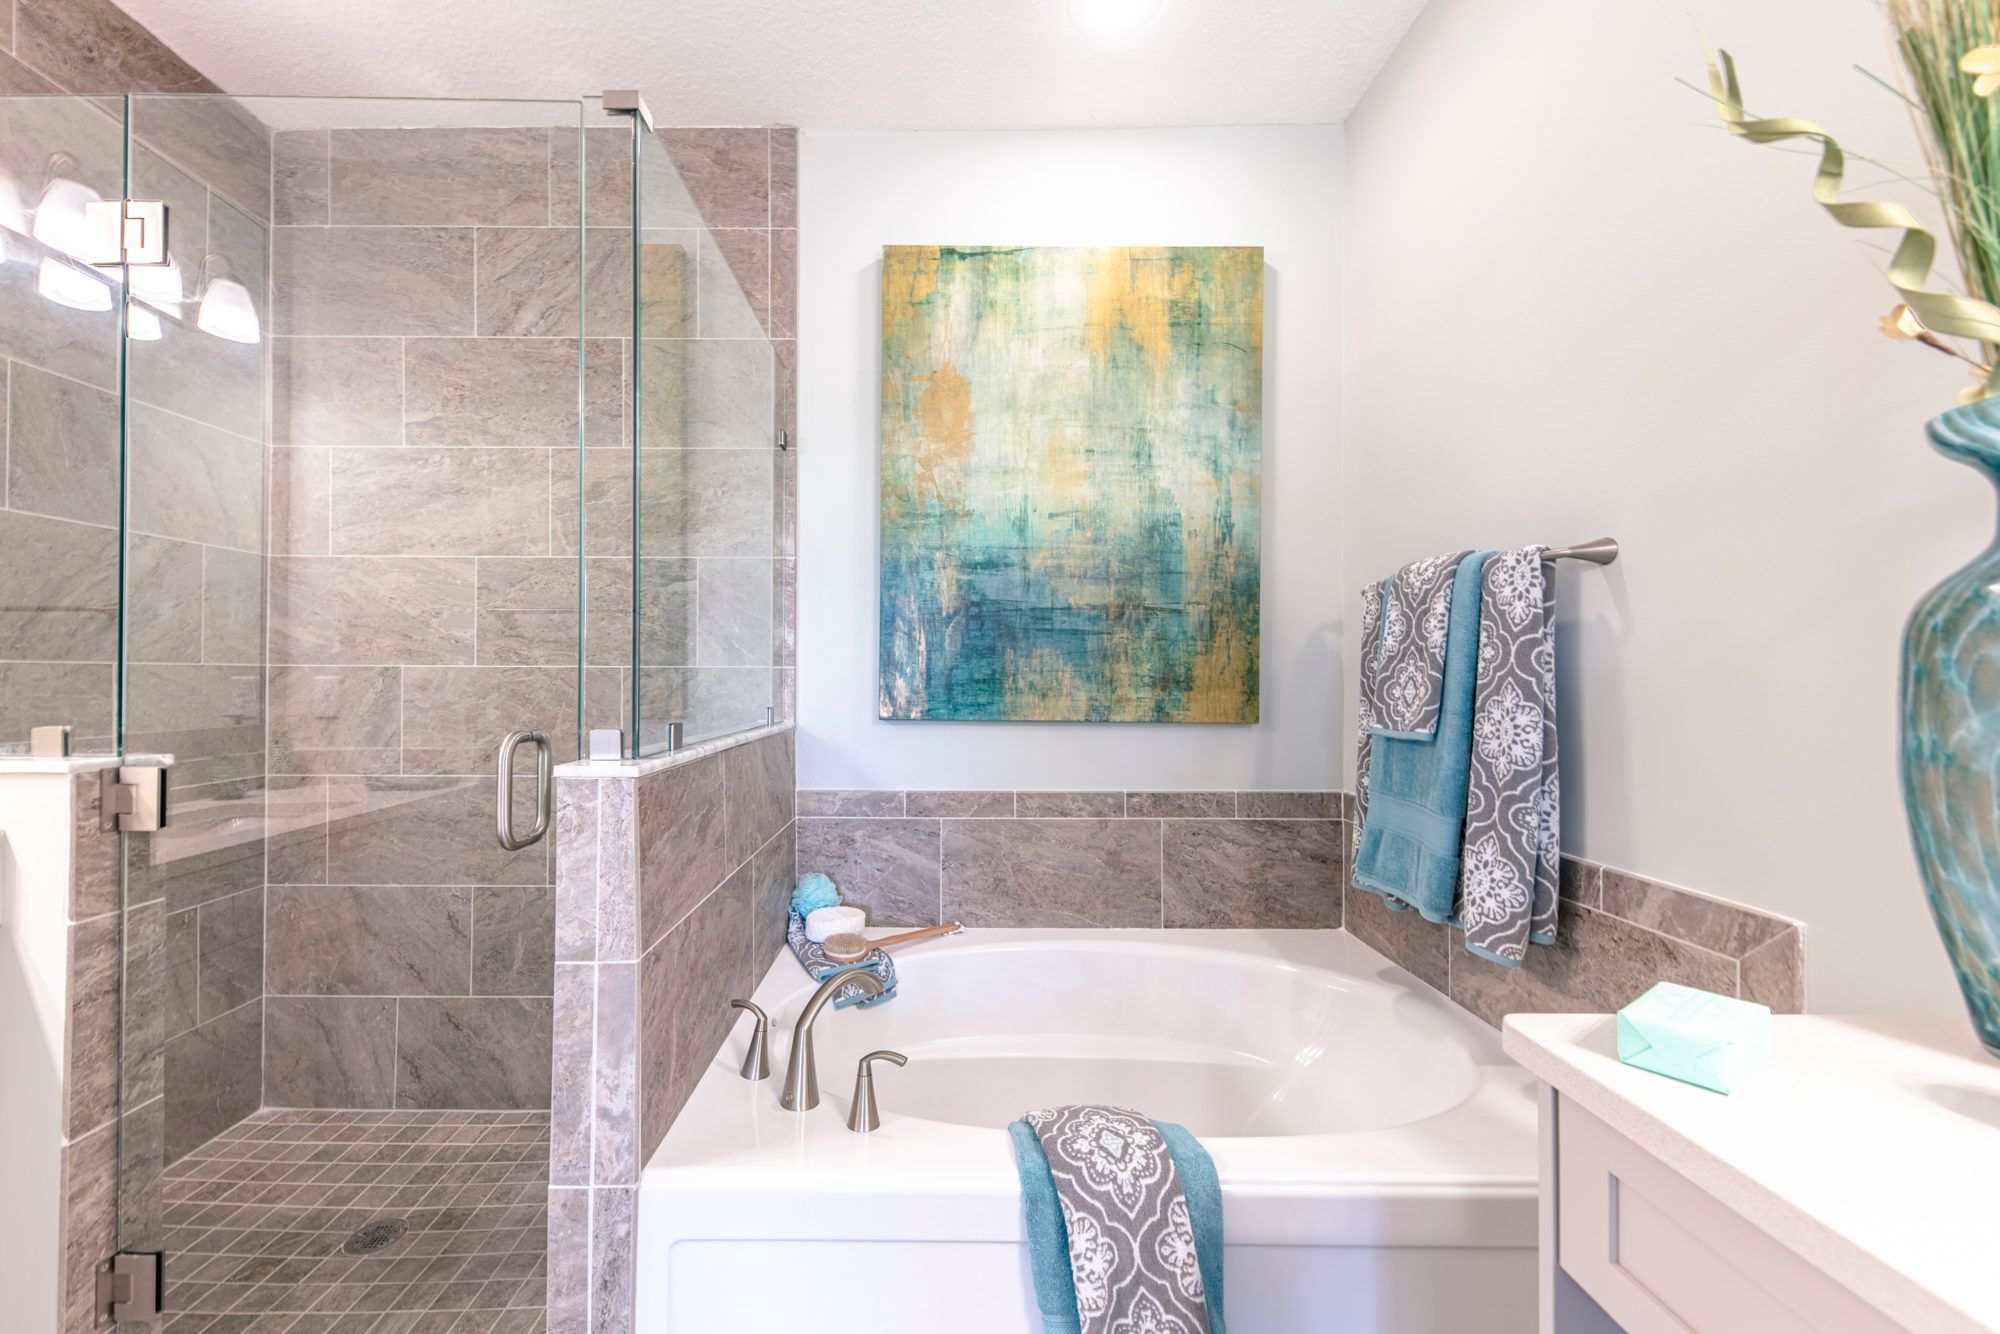 Bathroom featured in the Lucia By 5 Star Development in Palm Beach County, FL